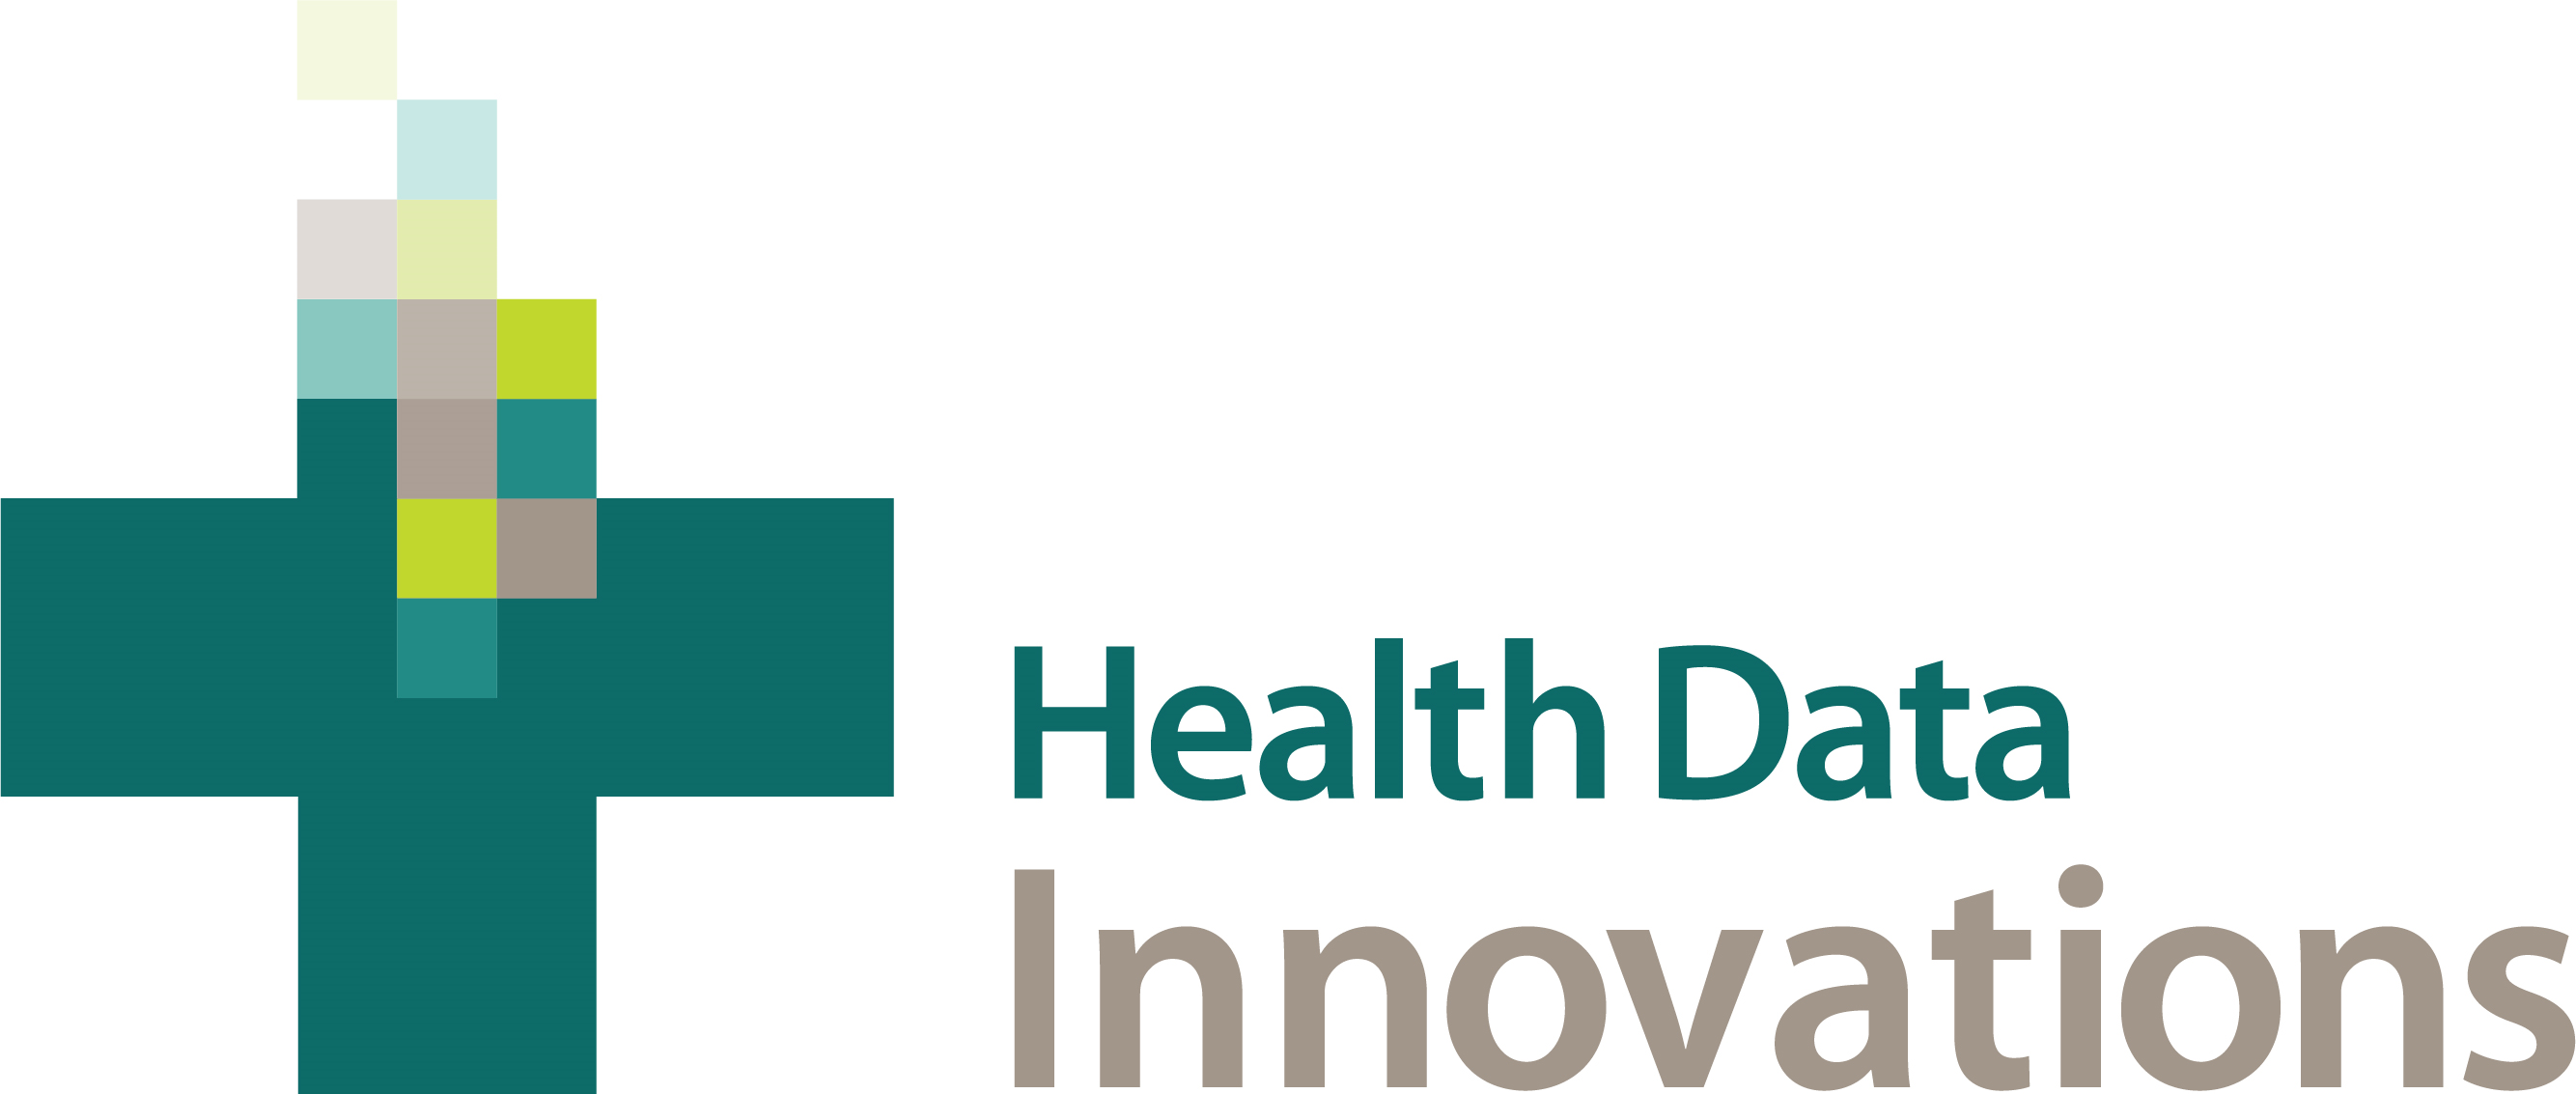 Health Data Innovations